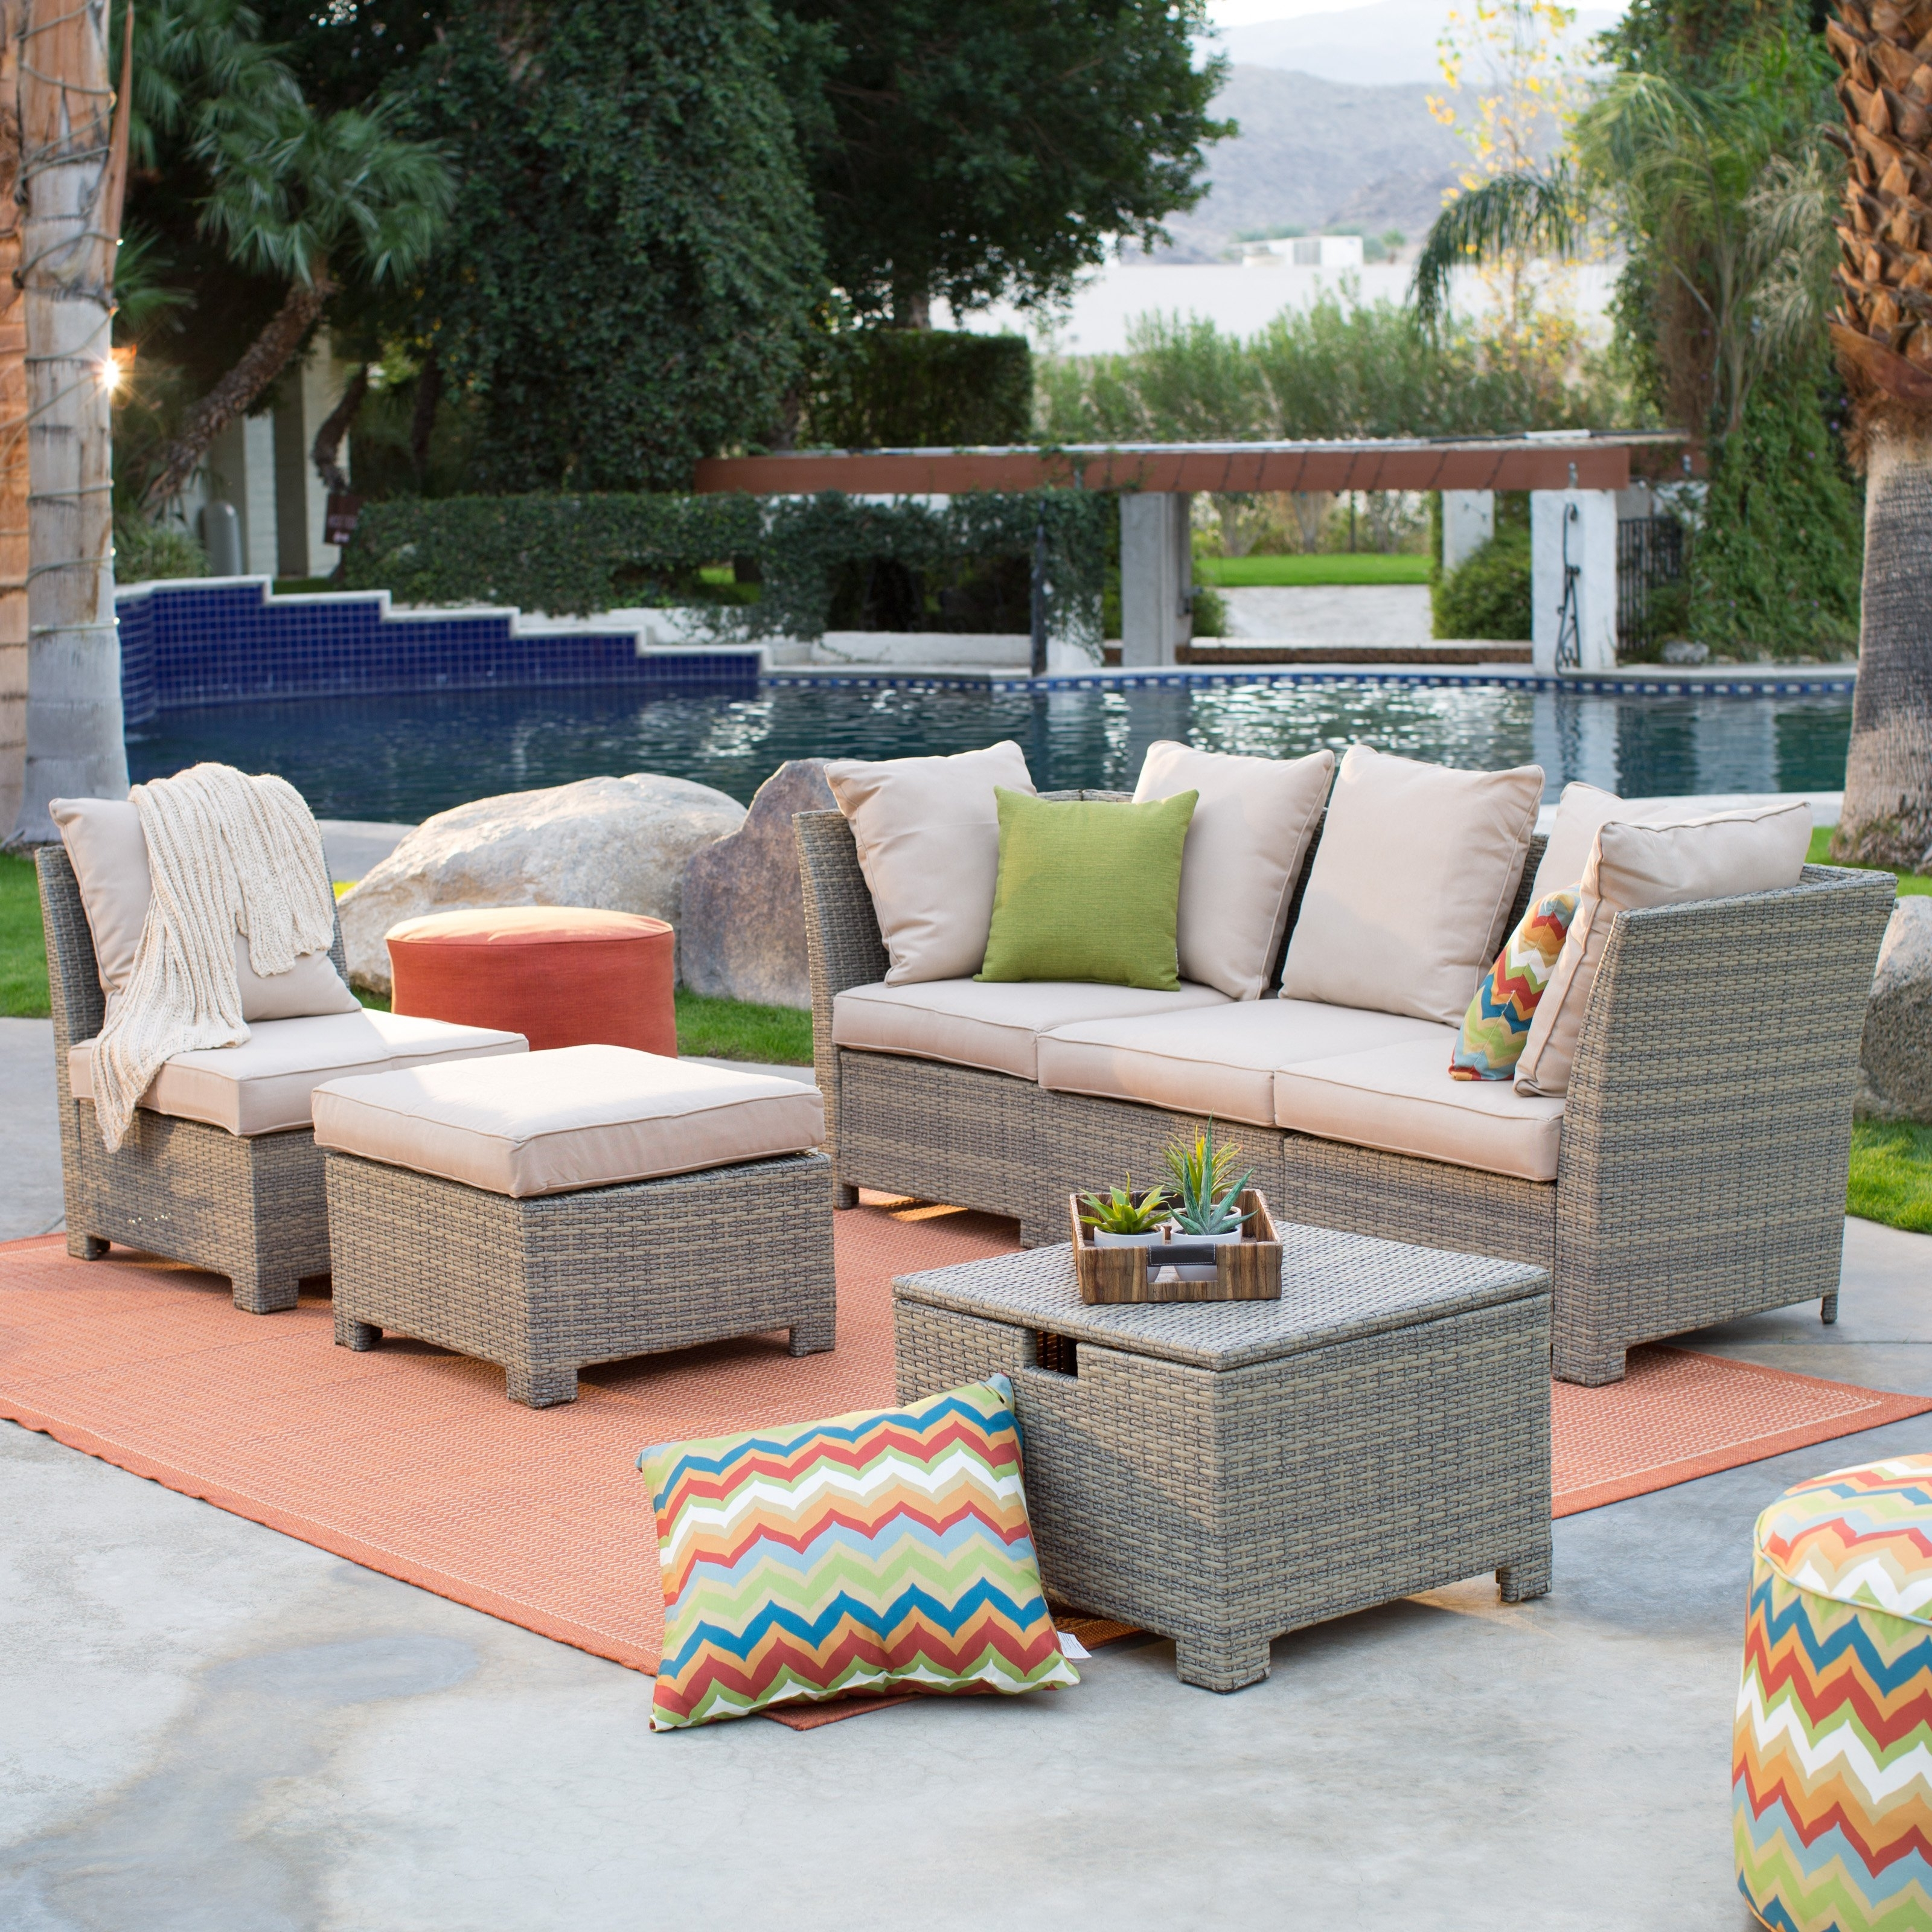 Coral Coast South Isle All Weather Wicker Natural Outdoor Pertaining To Well Known Patio Sectional Conversation Sets (View 8 of 20)